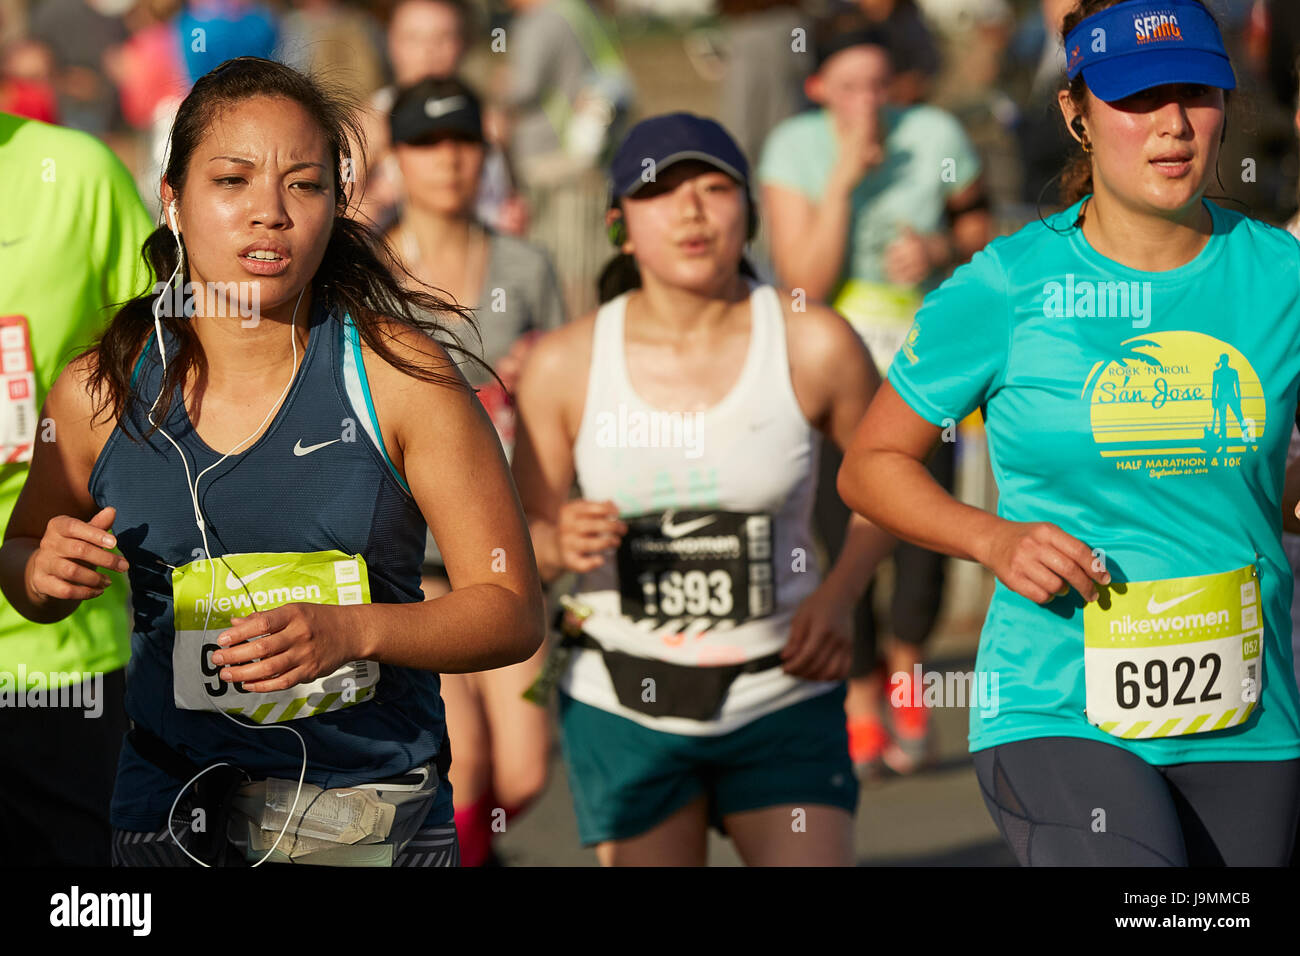 2333255ce61a Group Of Female Athletes Approaching The Finish Line In The Nike Woman s  Half Marathon